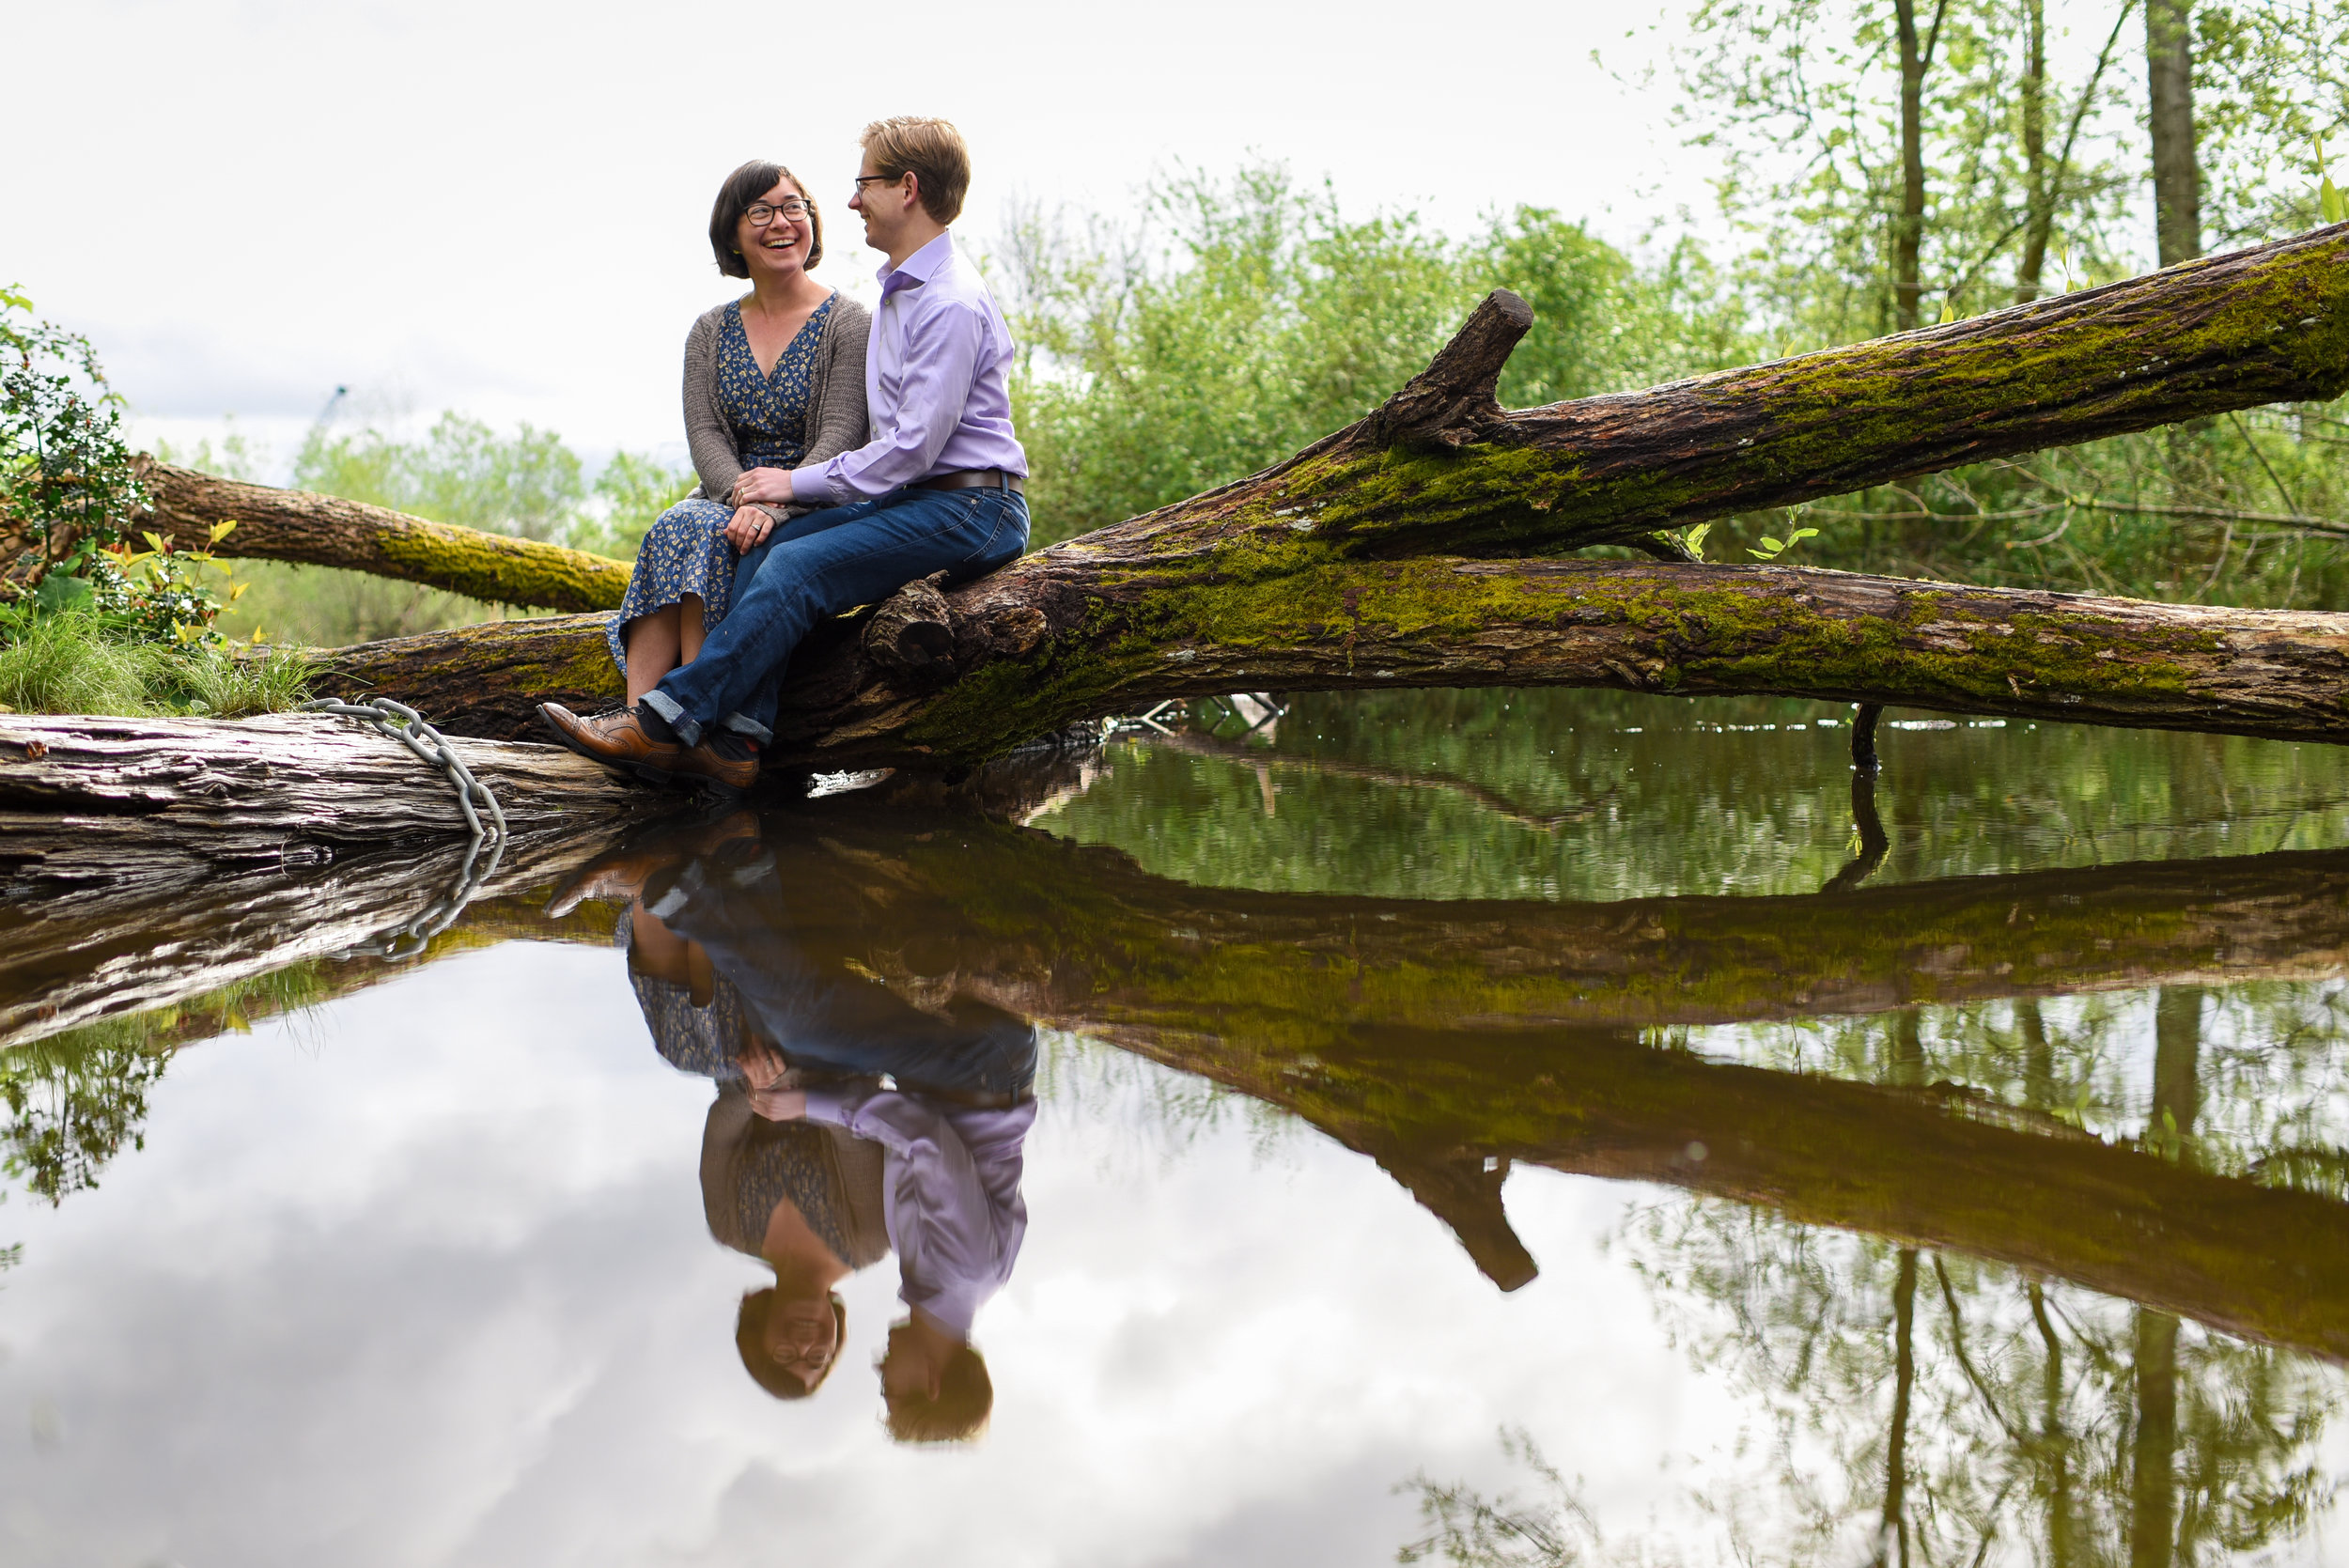 Erica and Matthew Fun and Light Nature Outdoors Engagement Portrait at Washington Park Arboretum in Seattle Washington